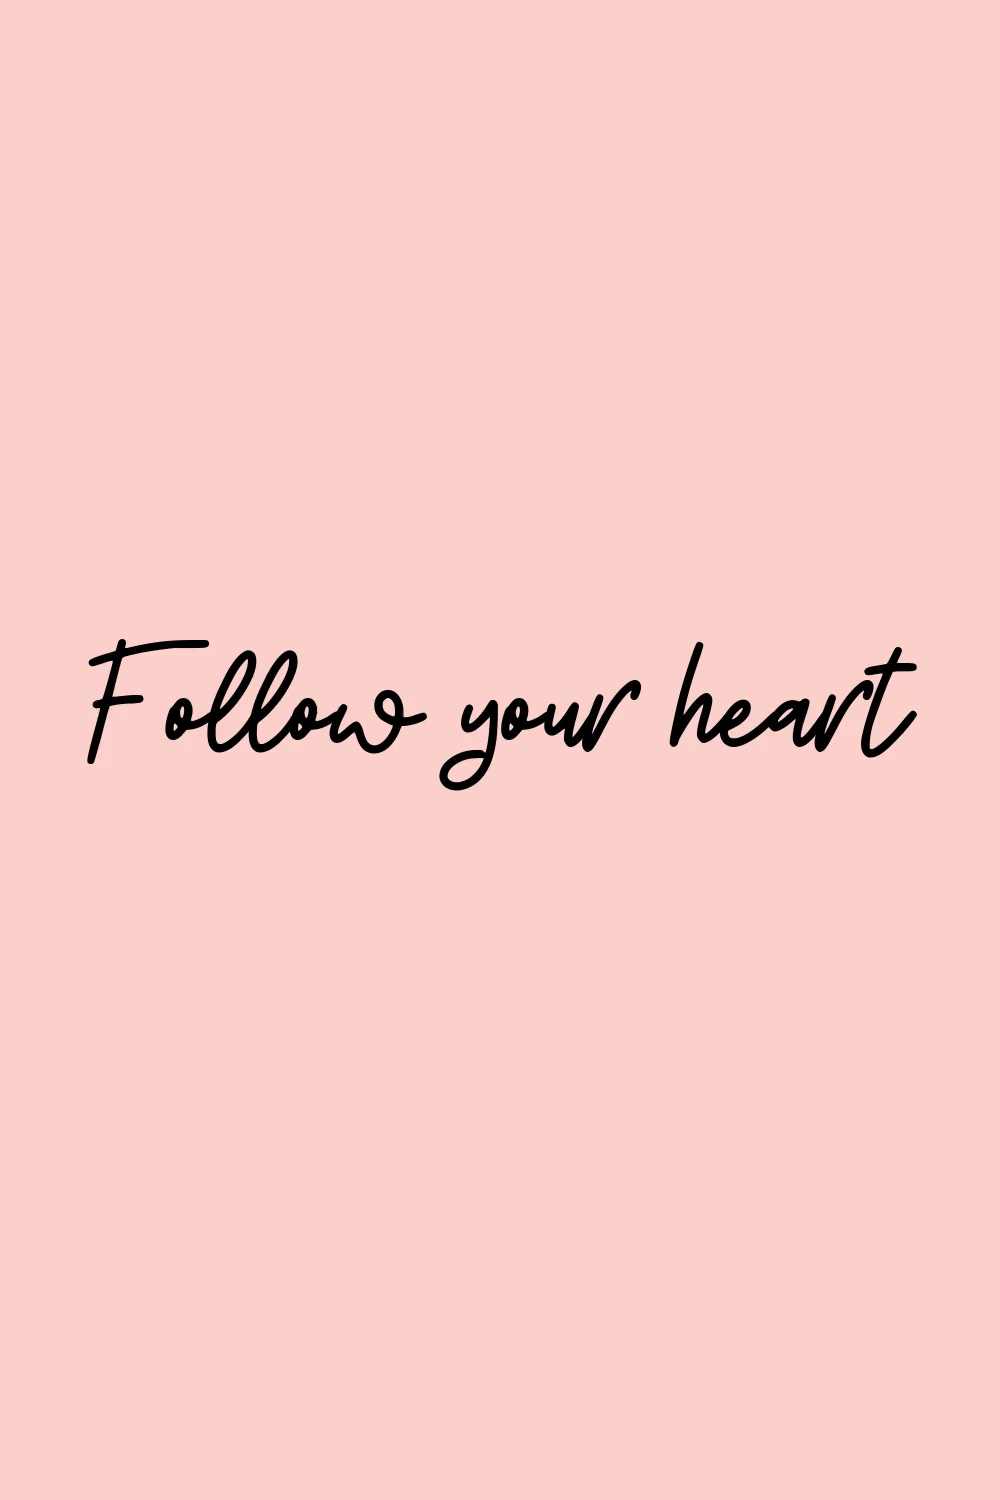 Follow your heart 🎀 Join the biggest iPhone Wallpaper Community on Pinterest!